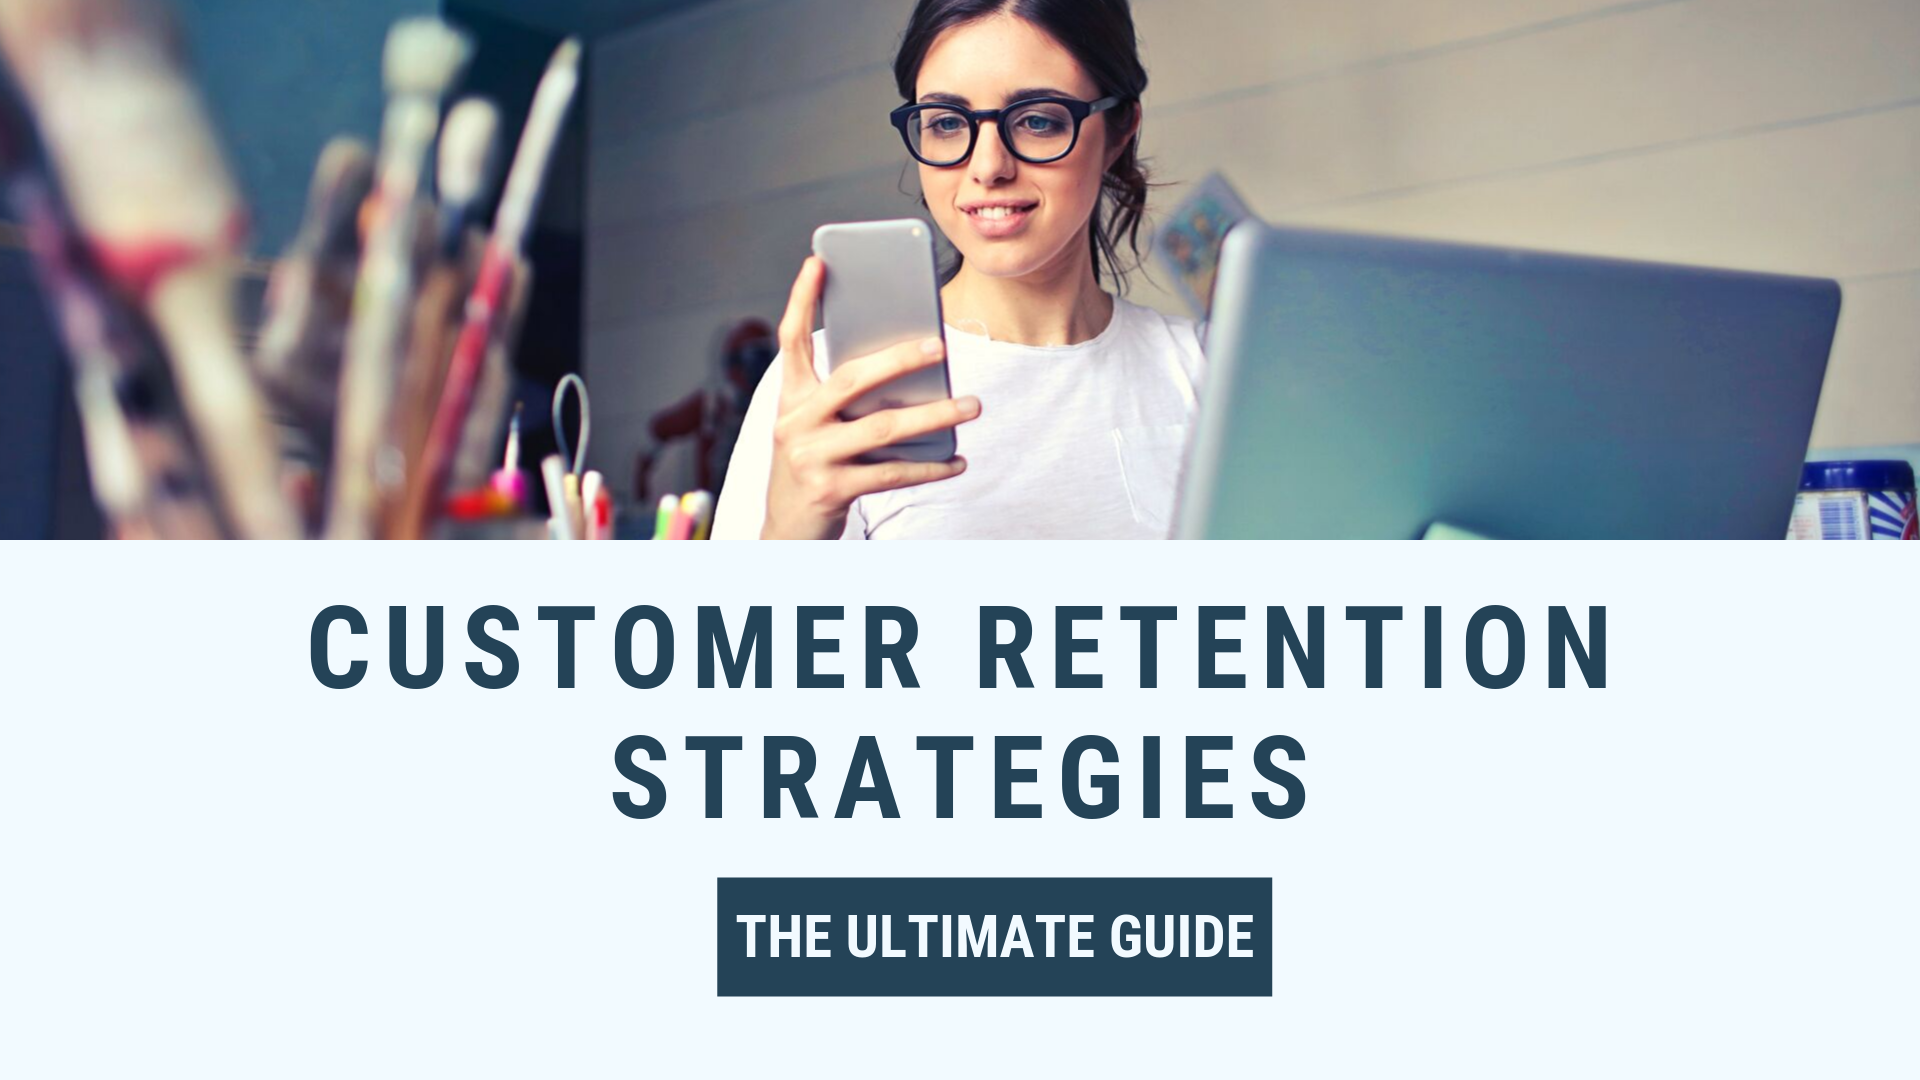 The ultimate guide to customer retention incentives